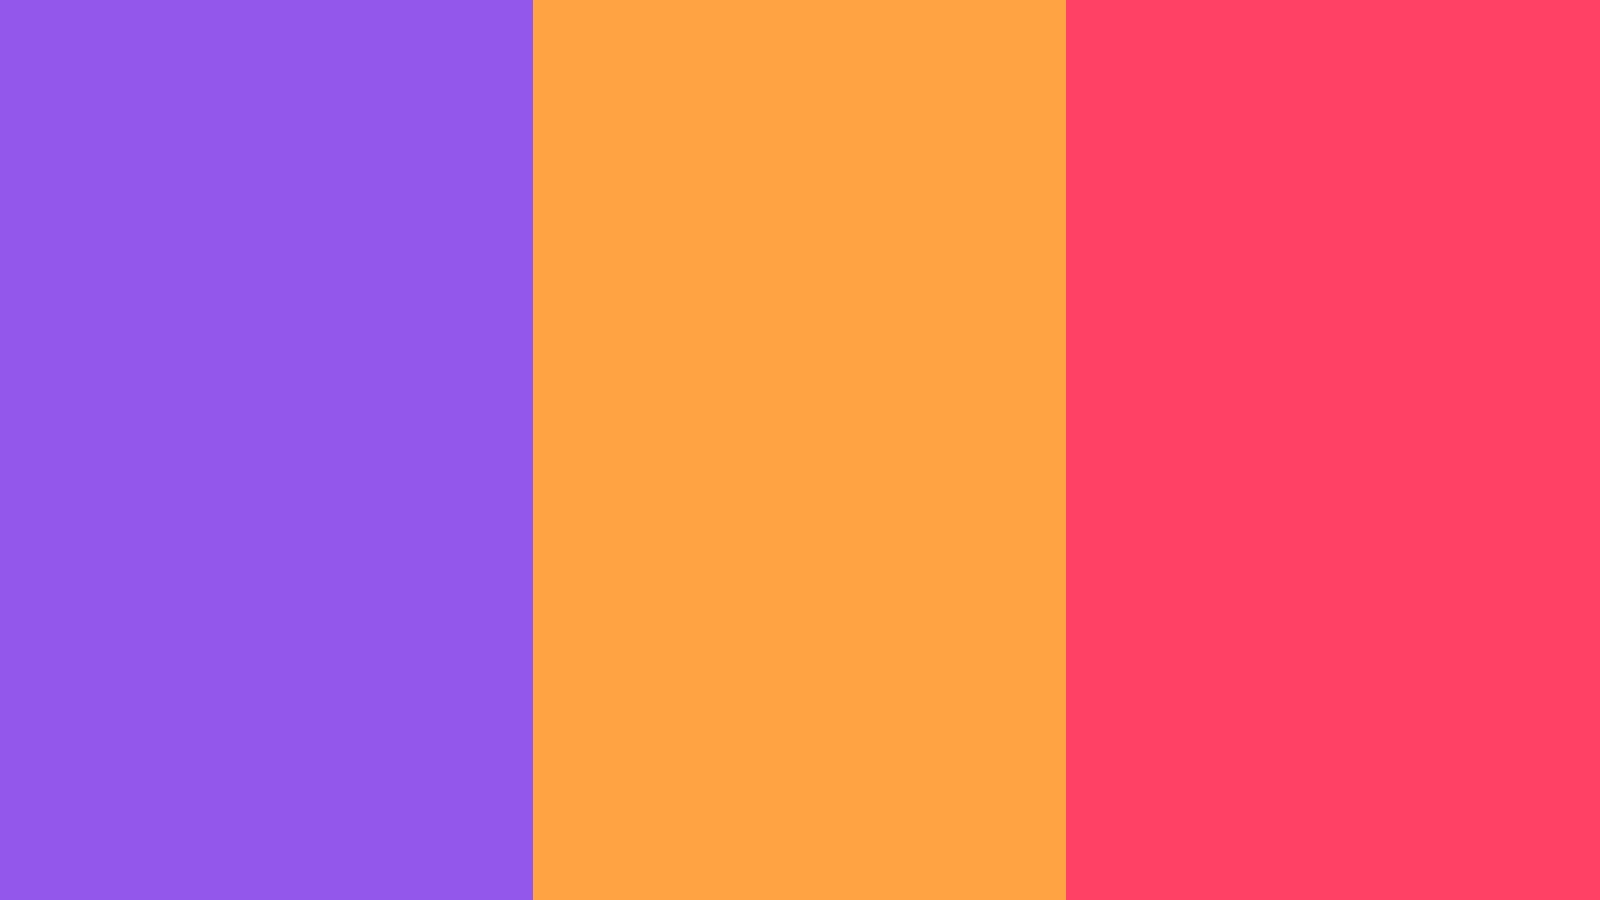 Purple Neon Carrot and Neon Fuchsia solid three color background 1600x900